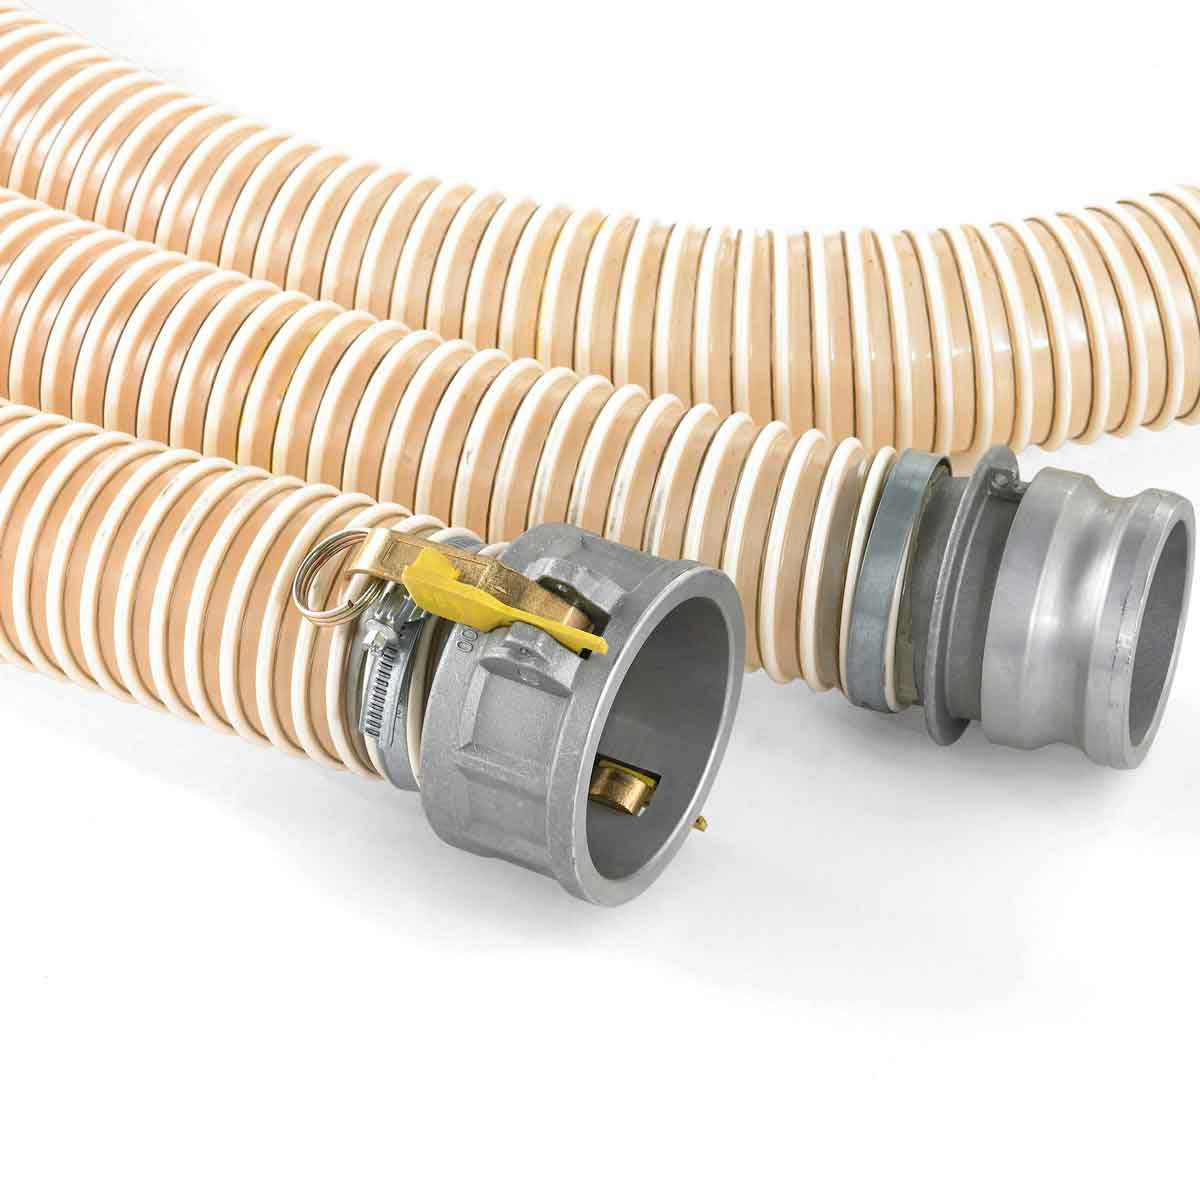 DC3300 Vacuum Hose with End Fittings